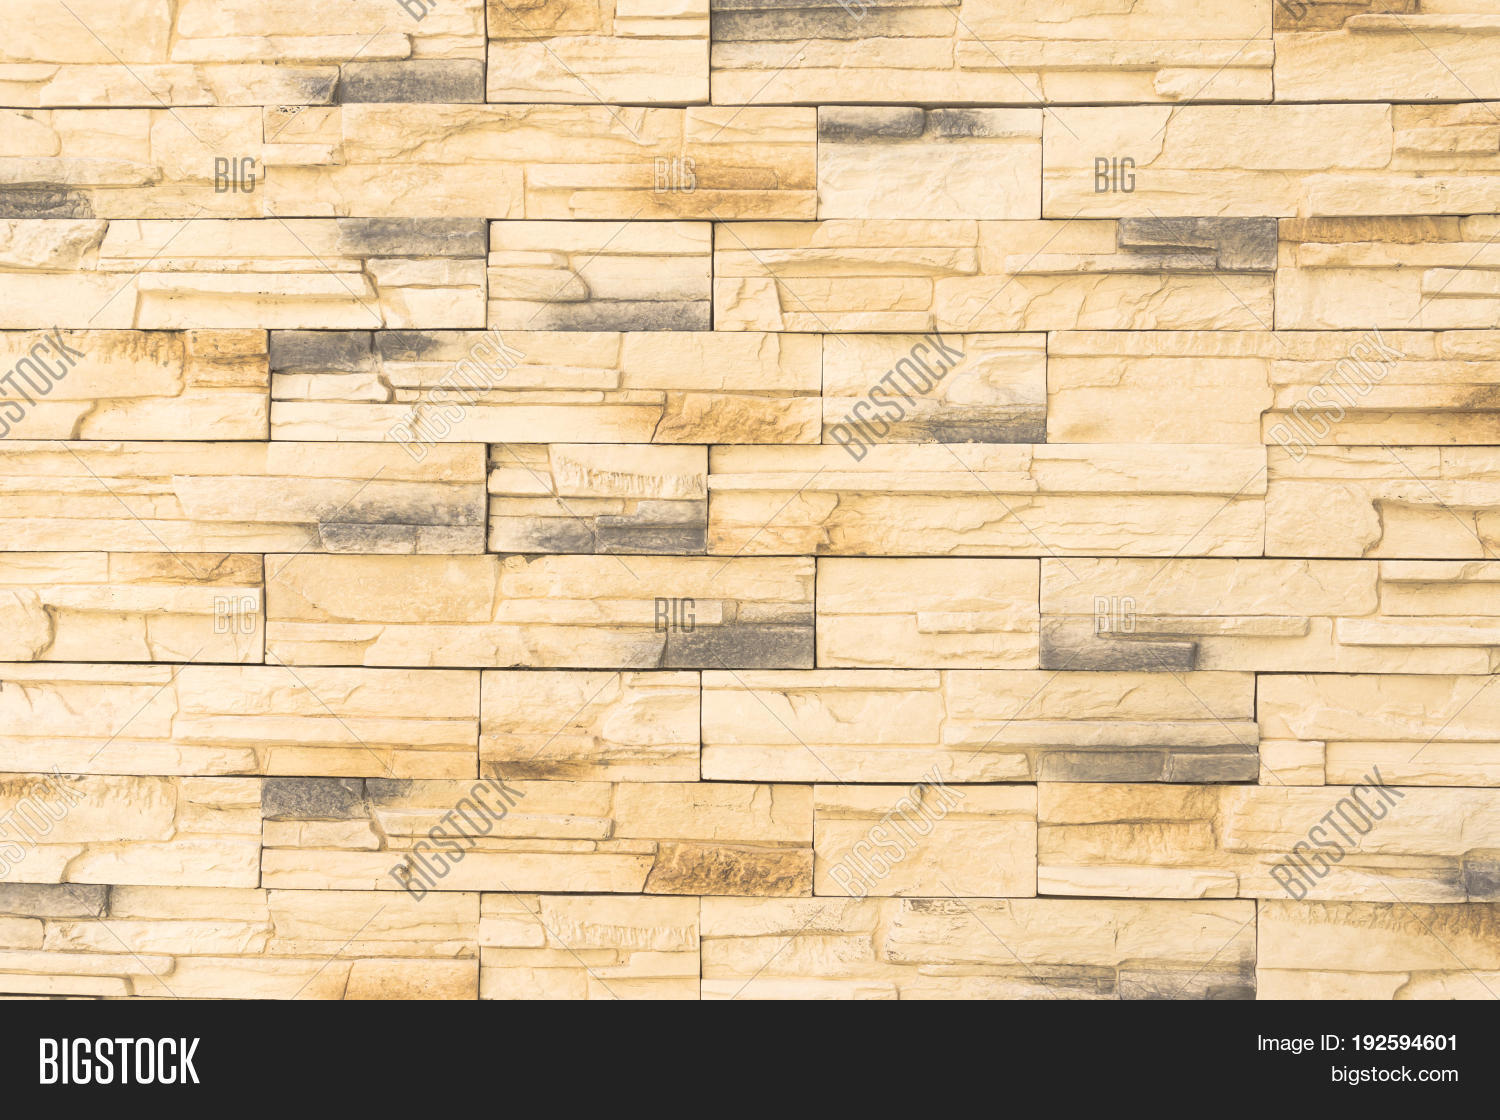 Old Brown Bricks Wall Pattern Brick Image & Photo | Bigstock